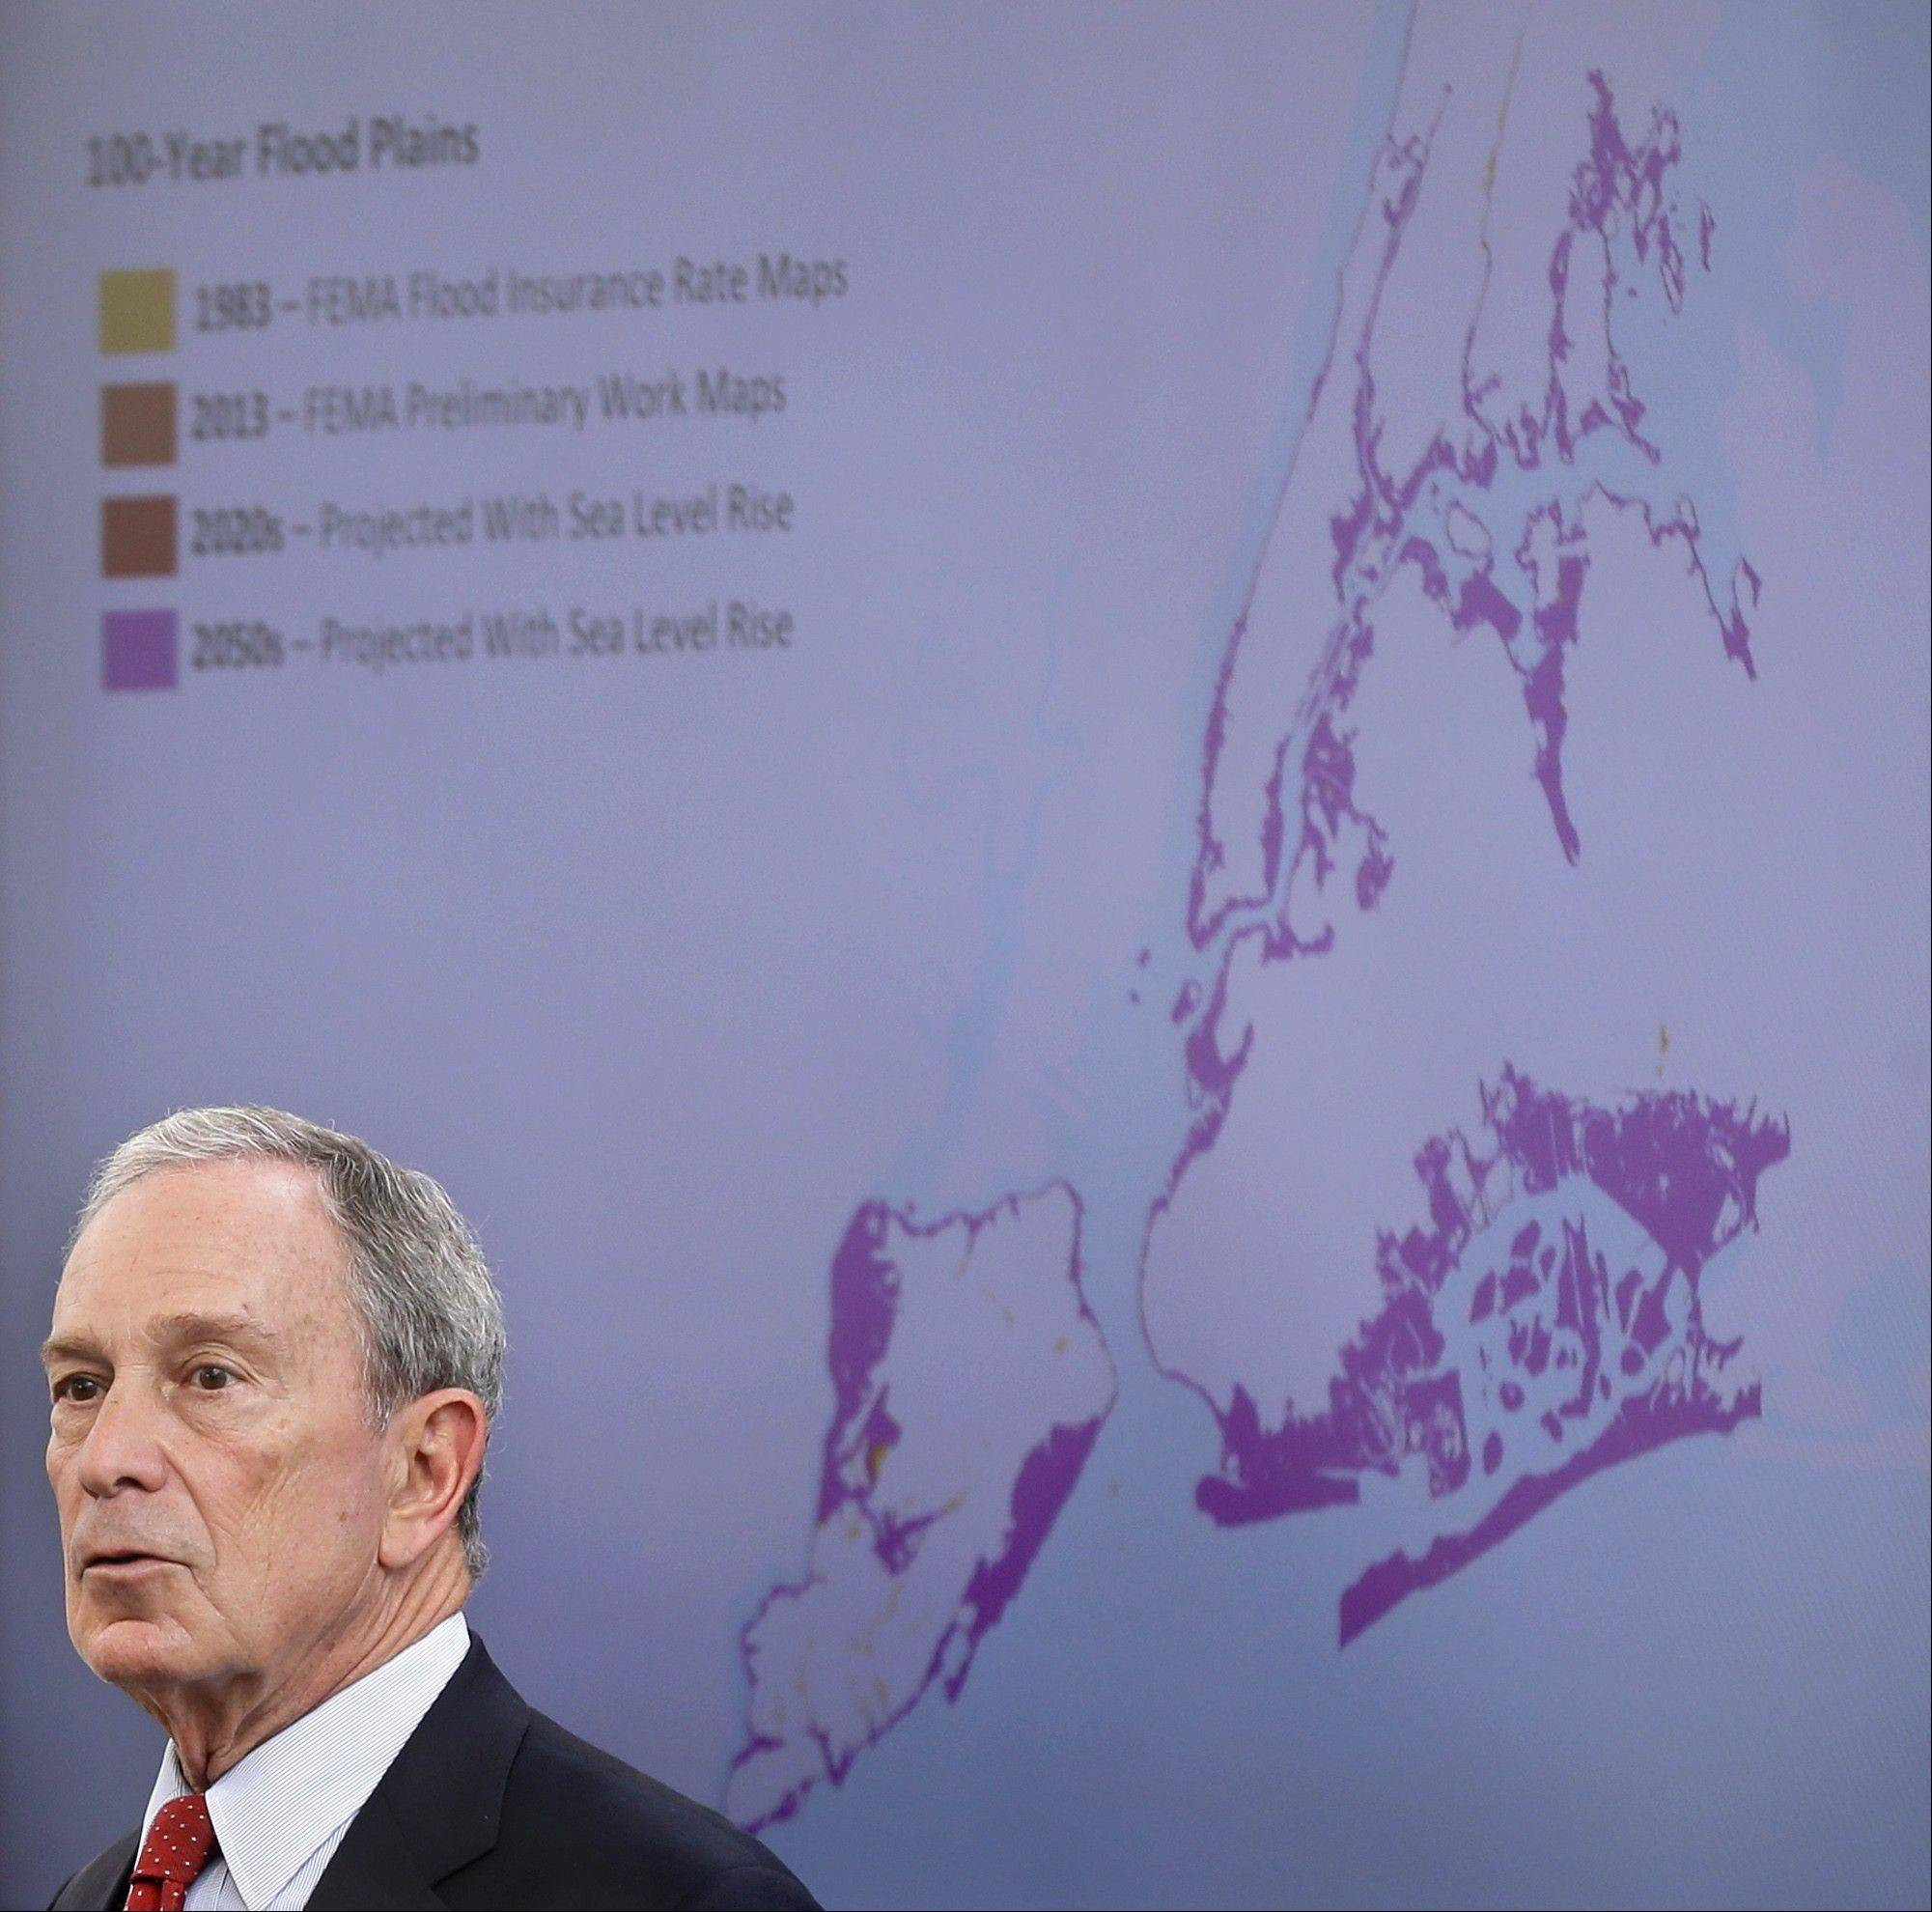 New York City Mayor Michael Bloomberg speaks Tuesday while a map of the projected 2050s 100-year flood plain of New York City is displayed in New York.